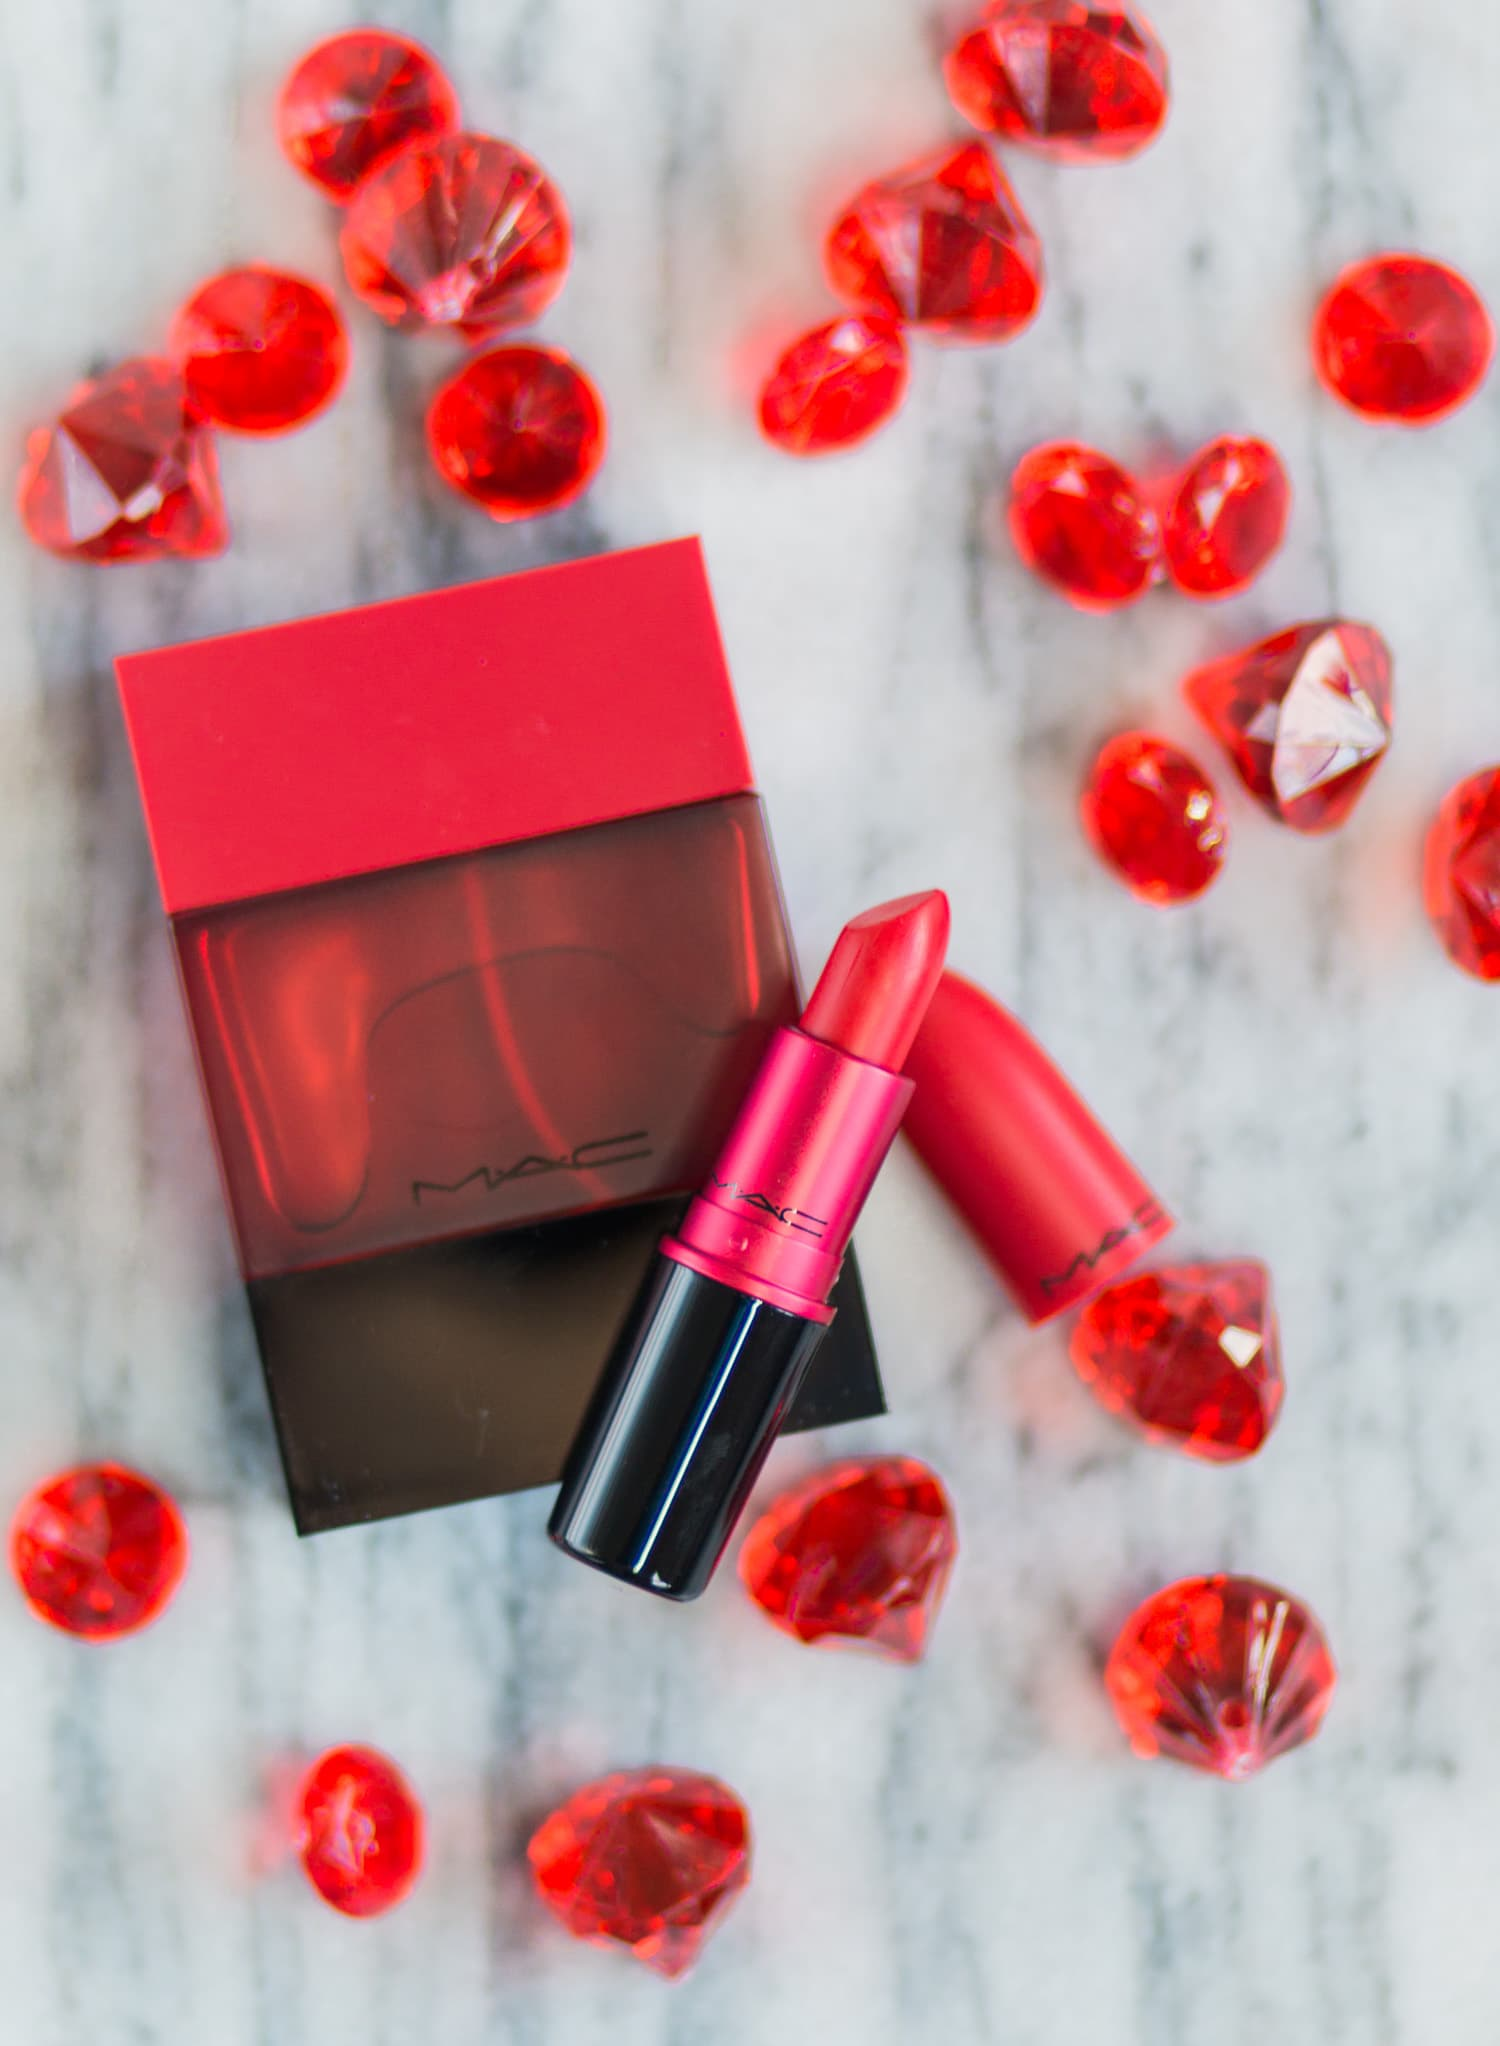 A full review of the MAC Shadescents Ruby Woo perfume and lipstick by Orlando, Florida, beauty blogger Ashley Brooke Nicholas